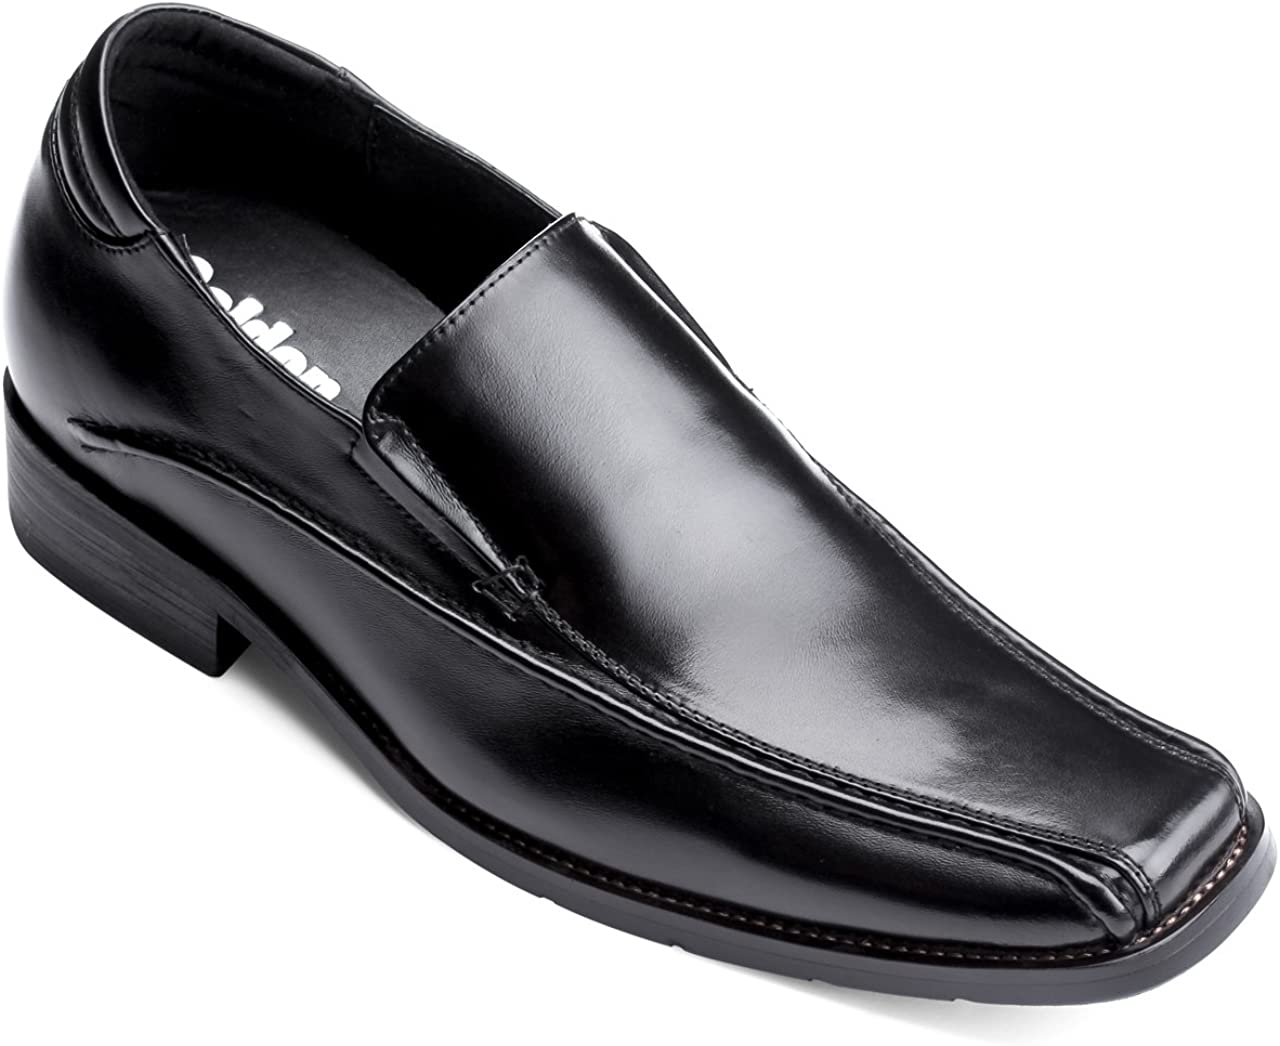 Calden Men's Invisible Height Increasing Elevator Shoes - Black Premium Leather Slip-on Lightweight Formal Dress Loafers - 2.6 Inches Taller - MD370